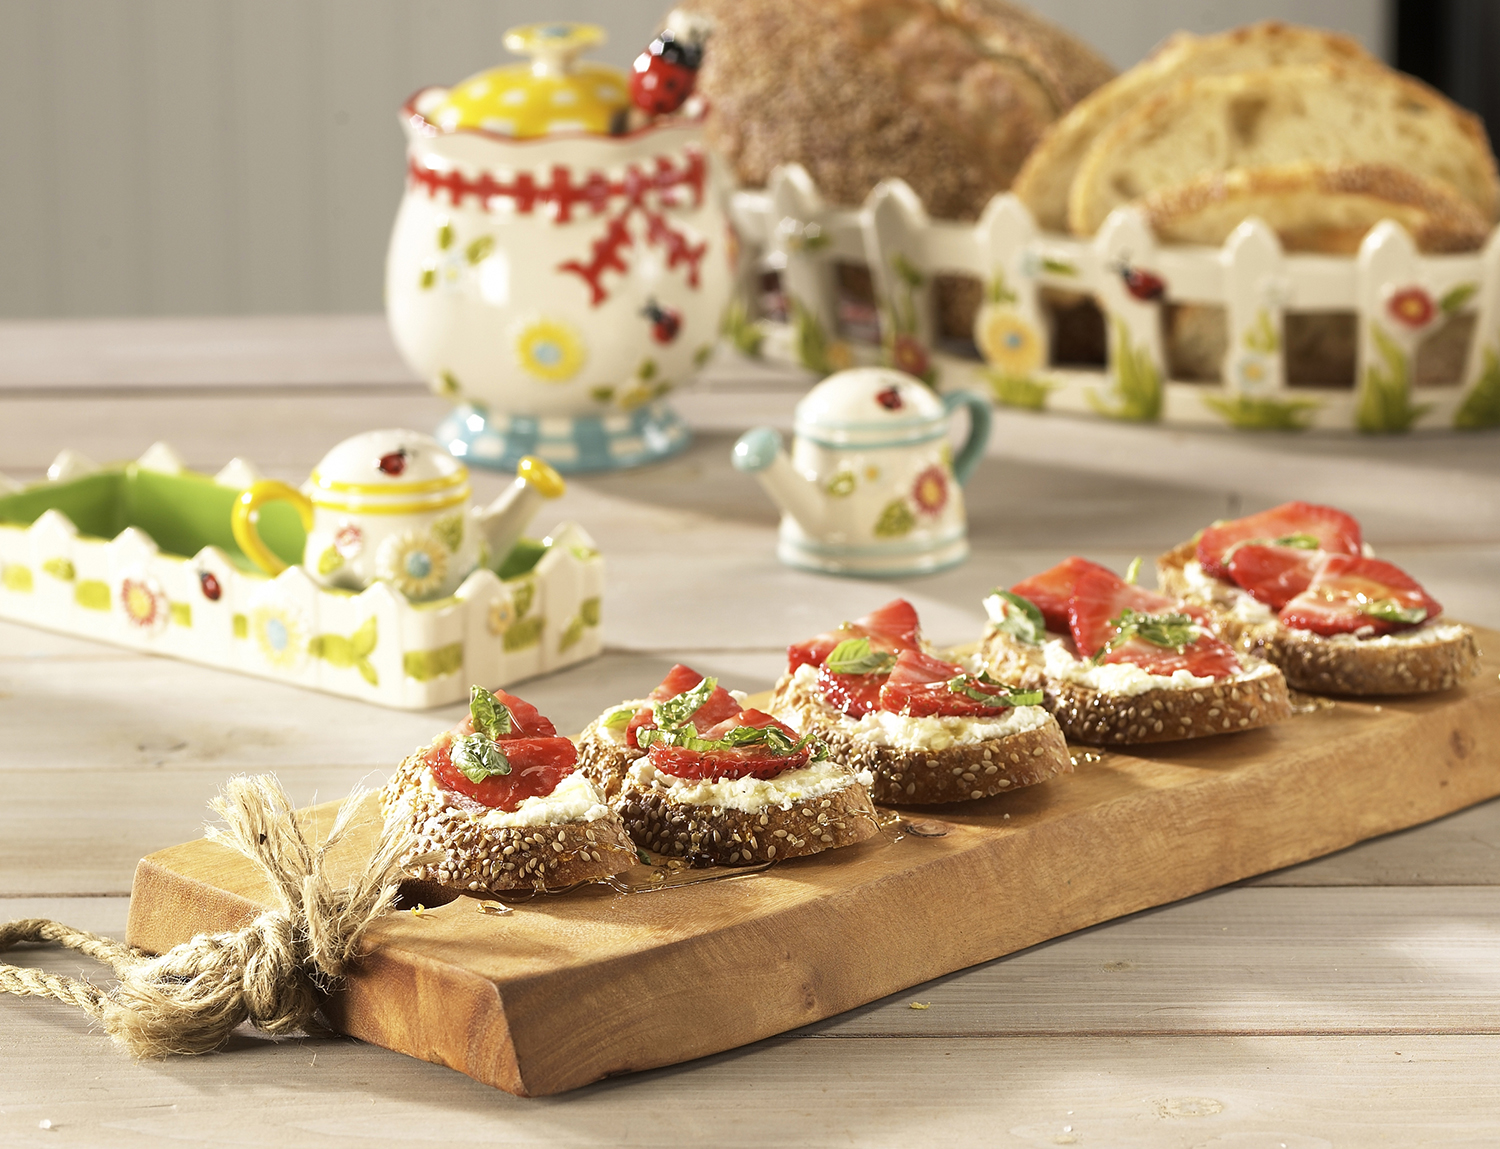 temp-tations® by Tara - Bakeware sets, cookware, ovenware and ...